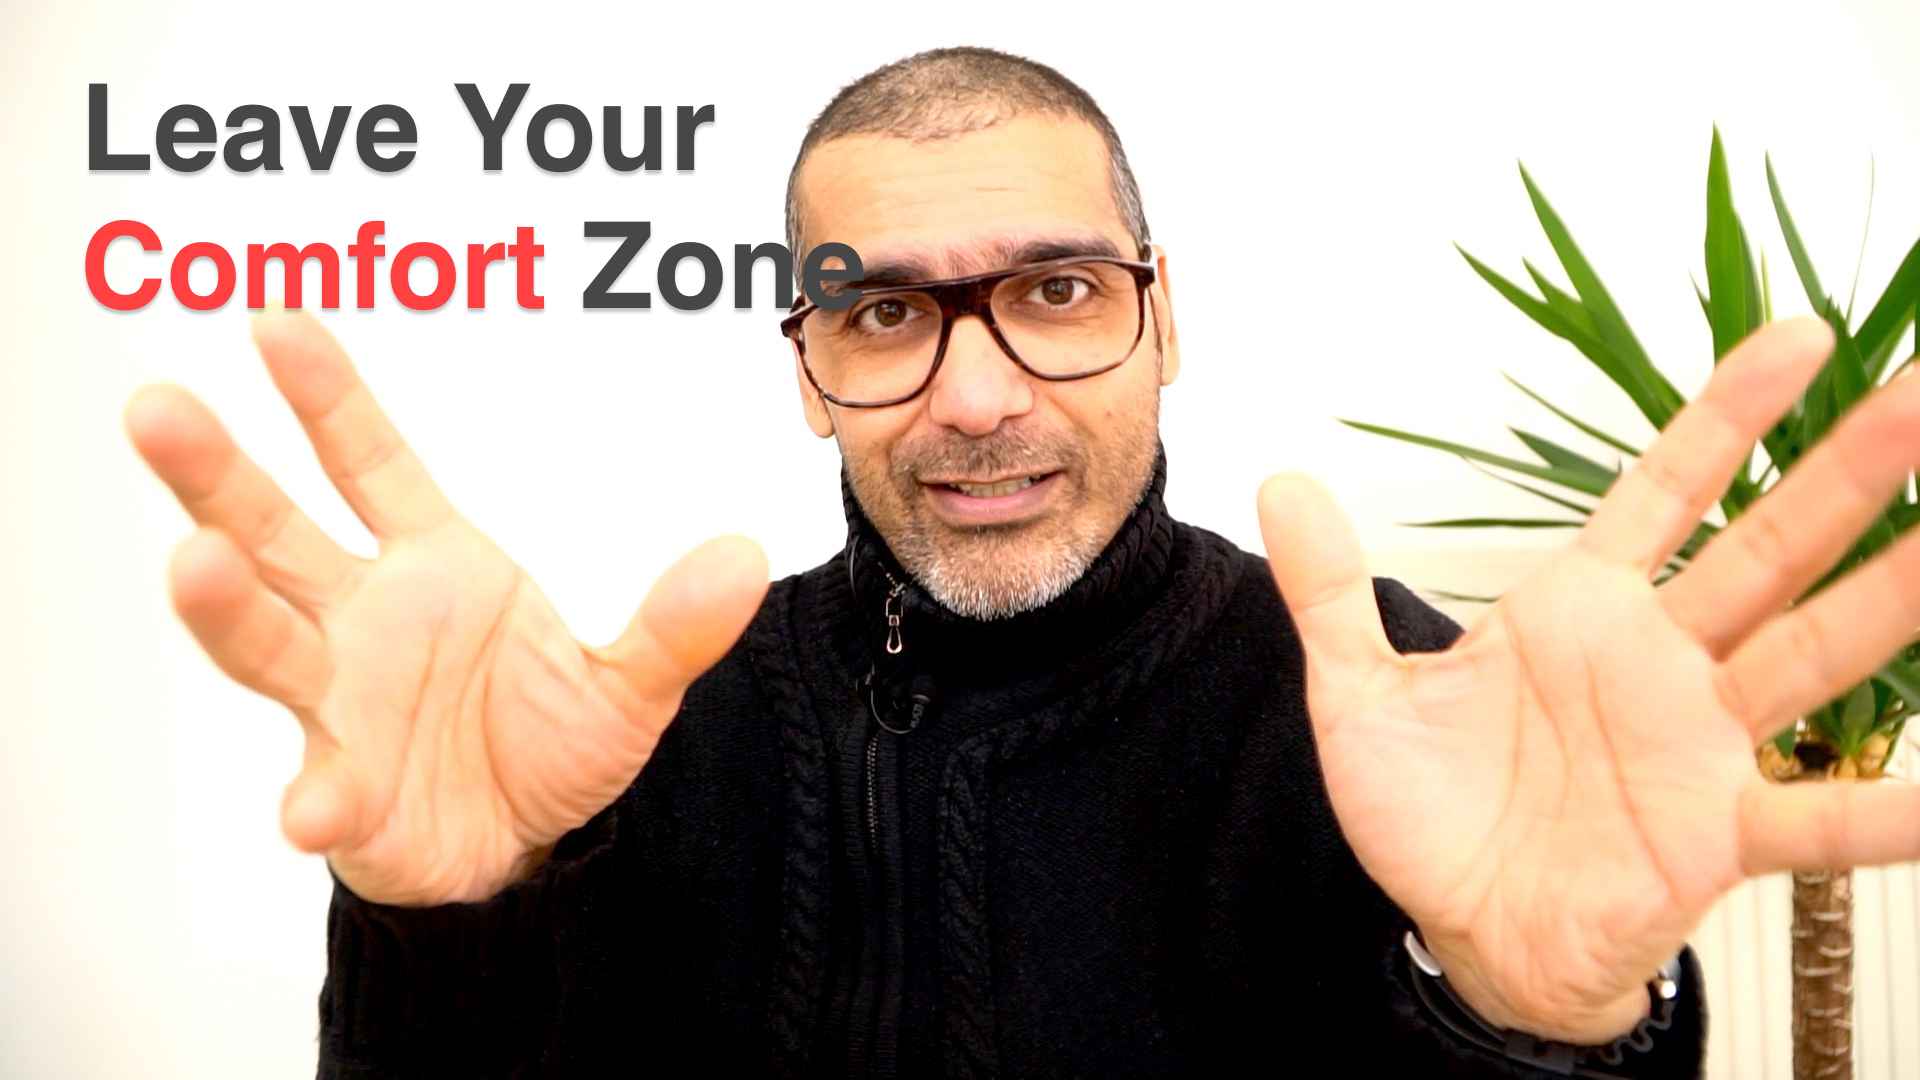 Getting out of your comfort zone - short MacJunky history